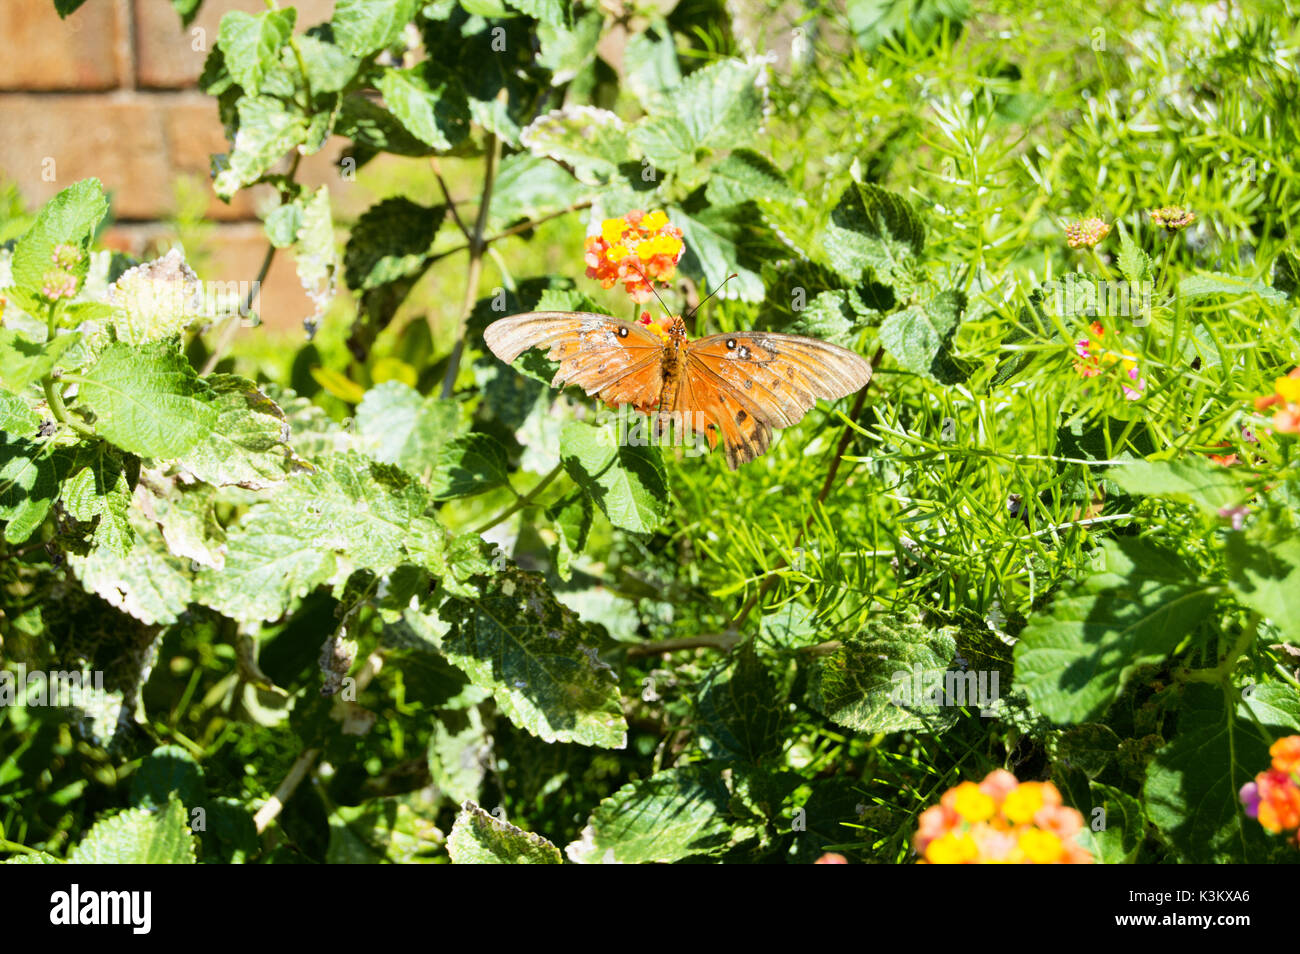 A hurt queen butterfly landed on a multi-colored lantana. - Stock Image